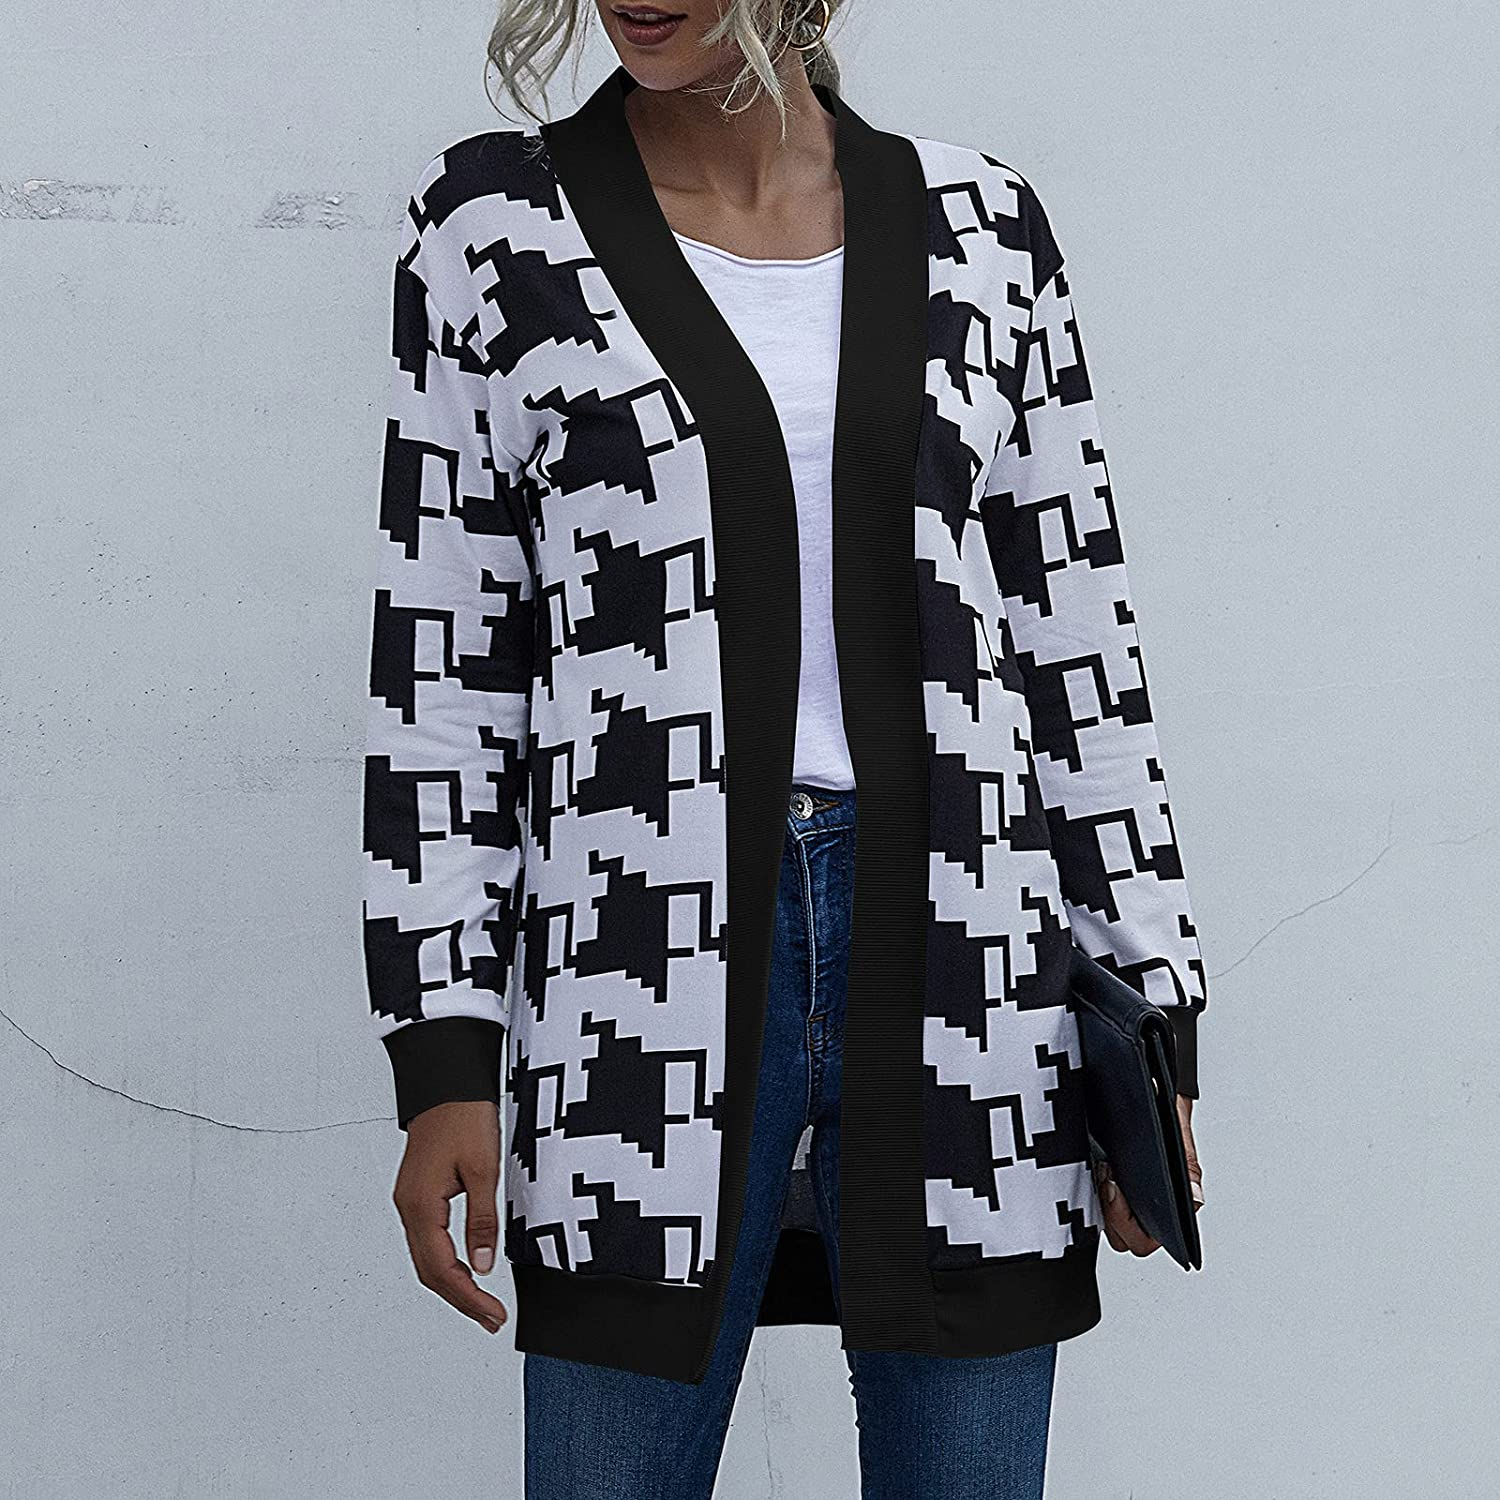 Cardigan for Women Print Splicing Open Stitch Coat Cardigans Casual Long Sleeve Long Outerwear Tops